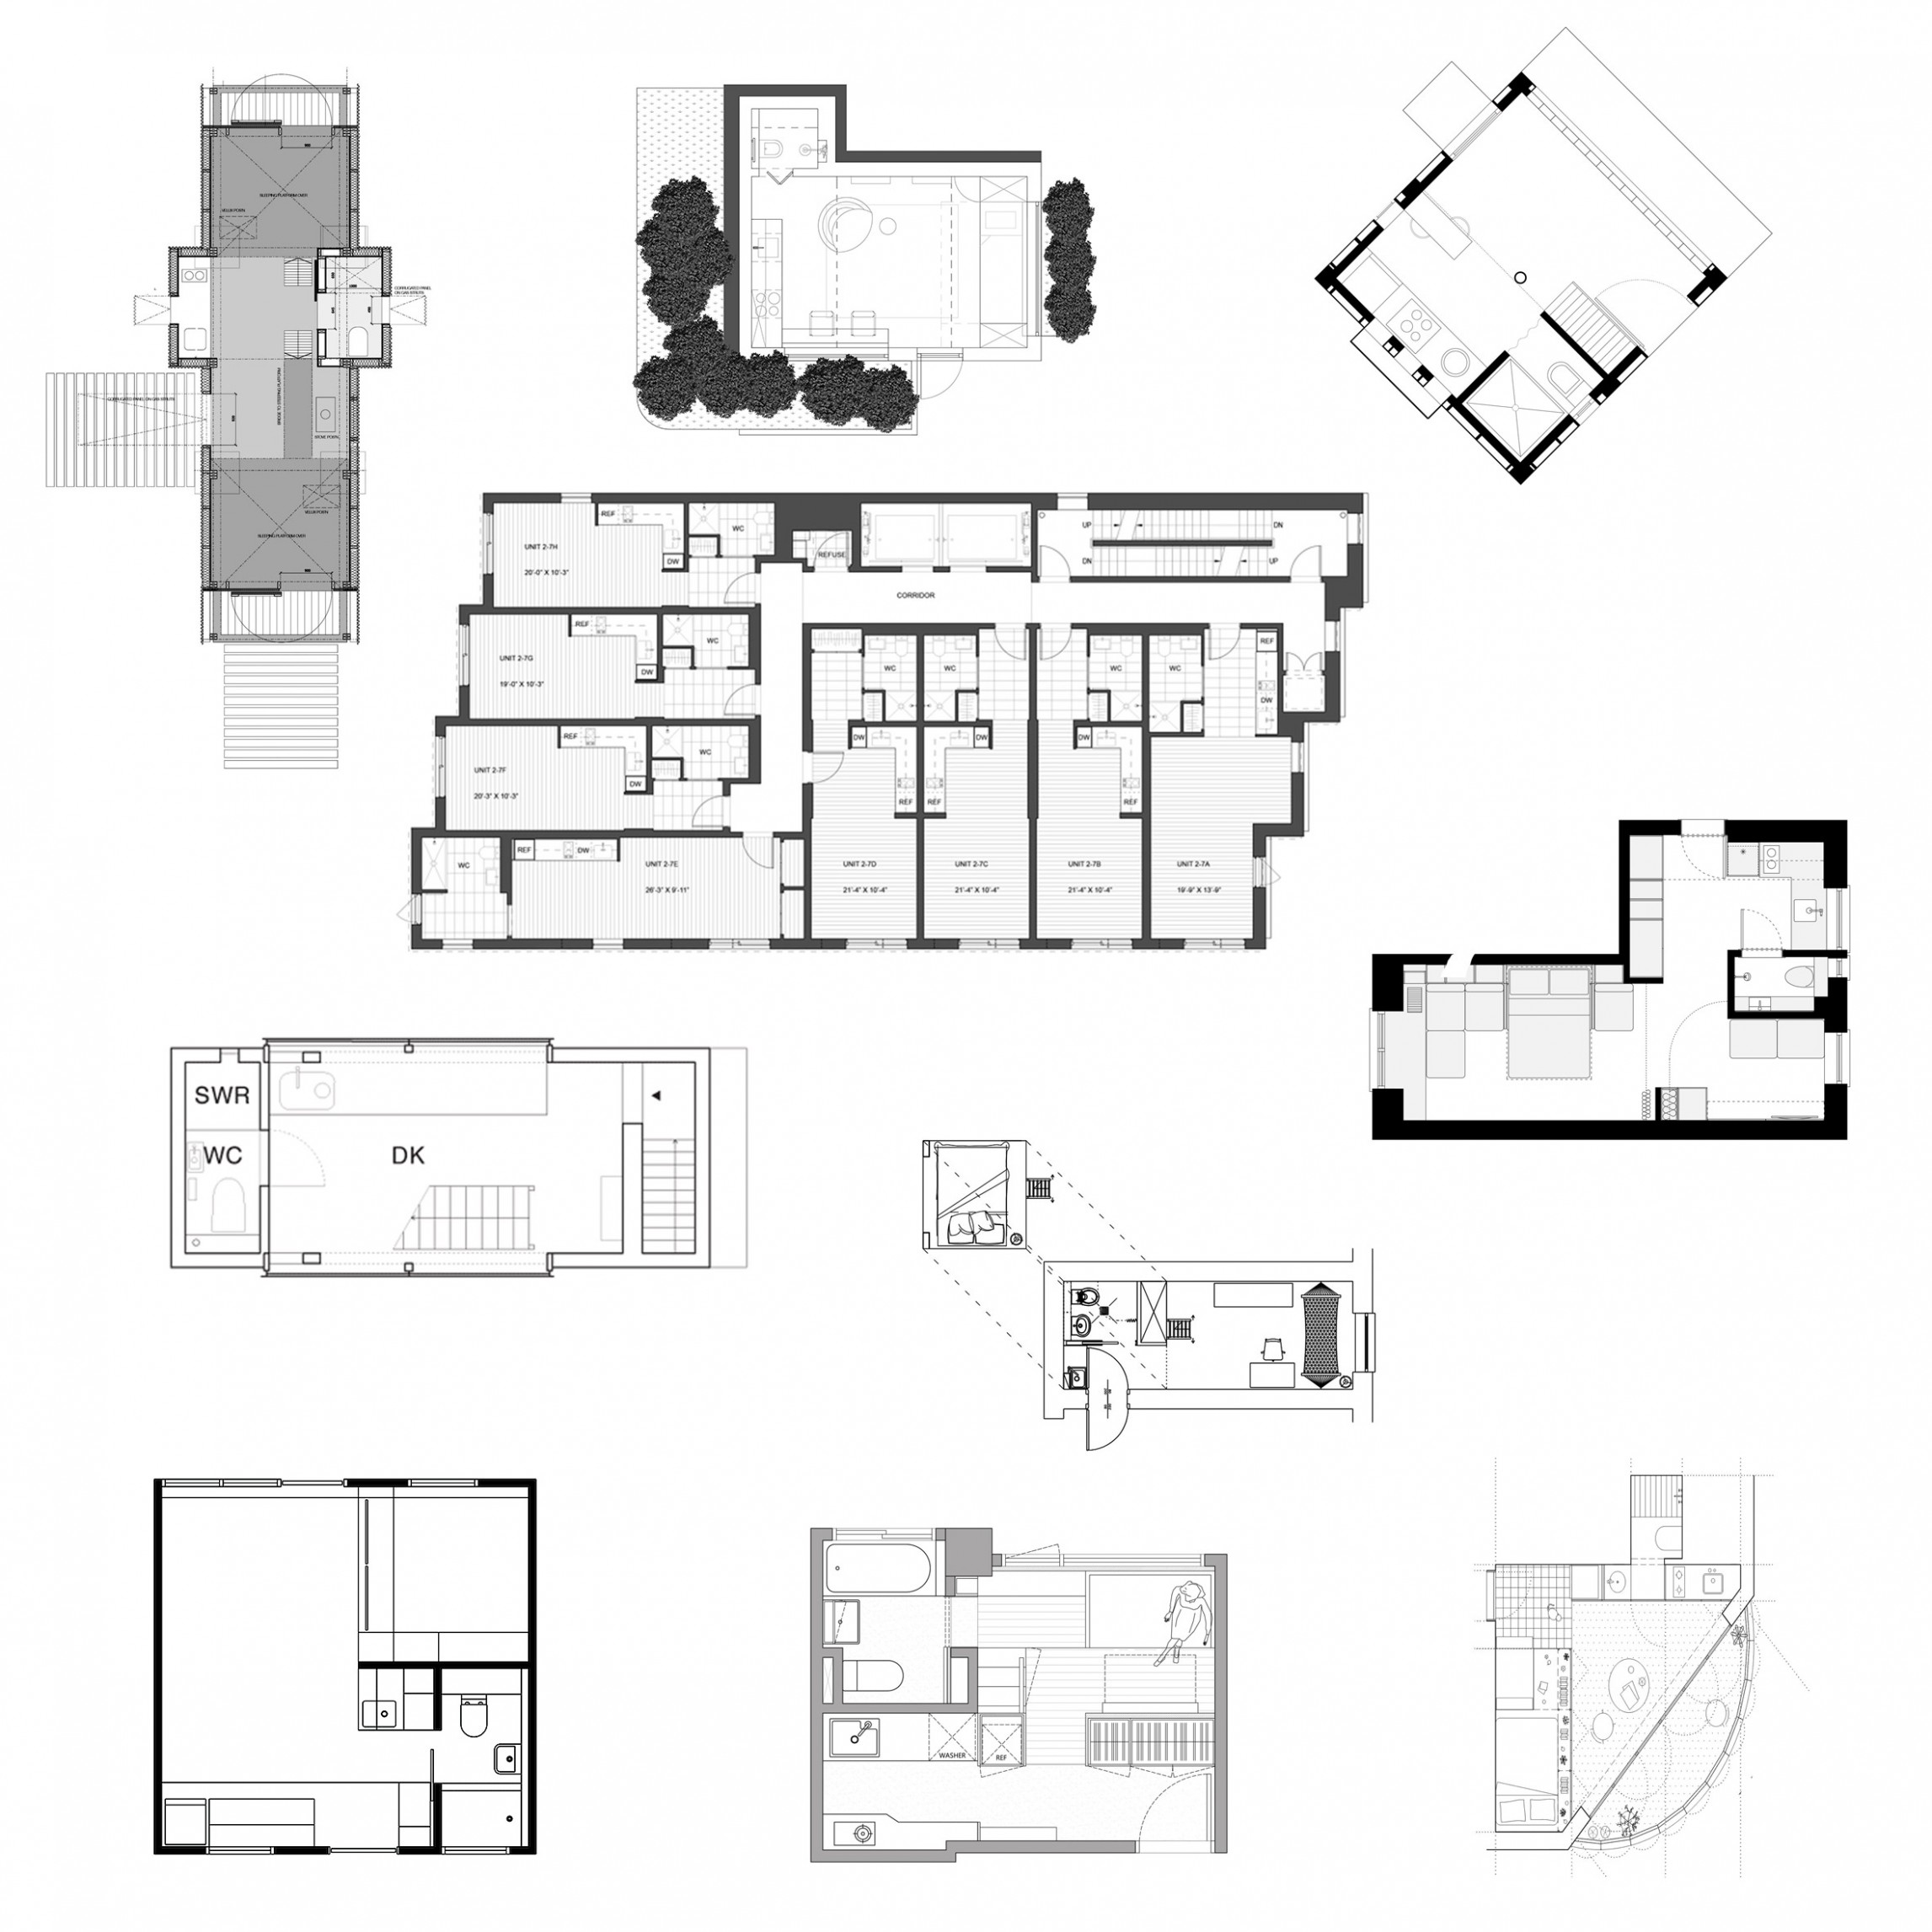 8 micro home floor plans designed to save space - Apartment Design Drawing